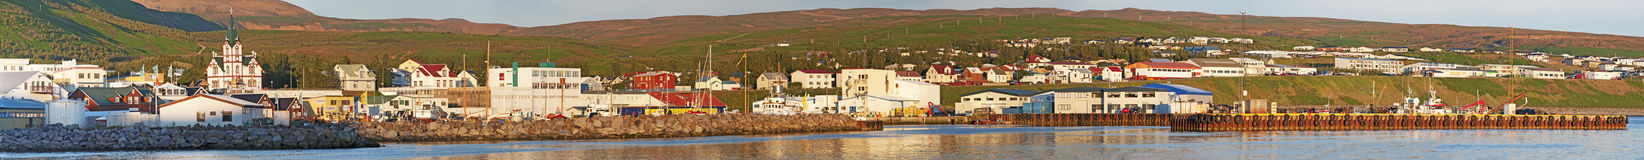 Husavik, Iceland, Northern Europe Royalty Free Stock Photo